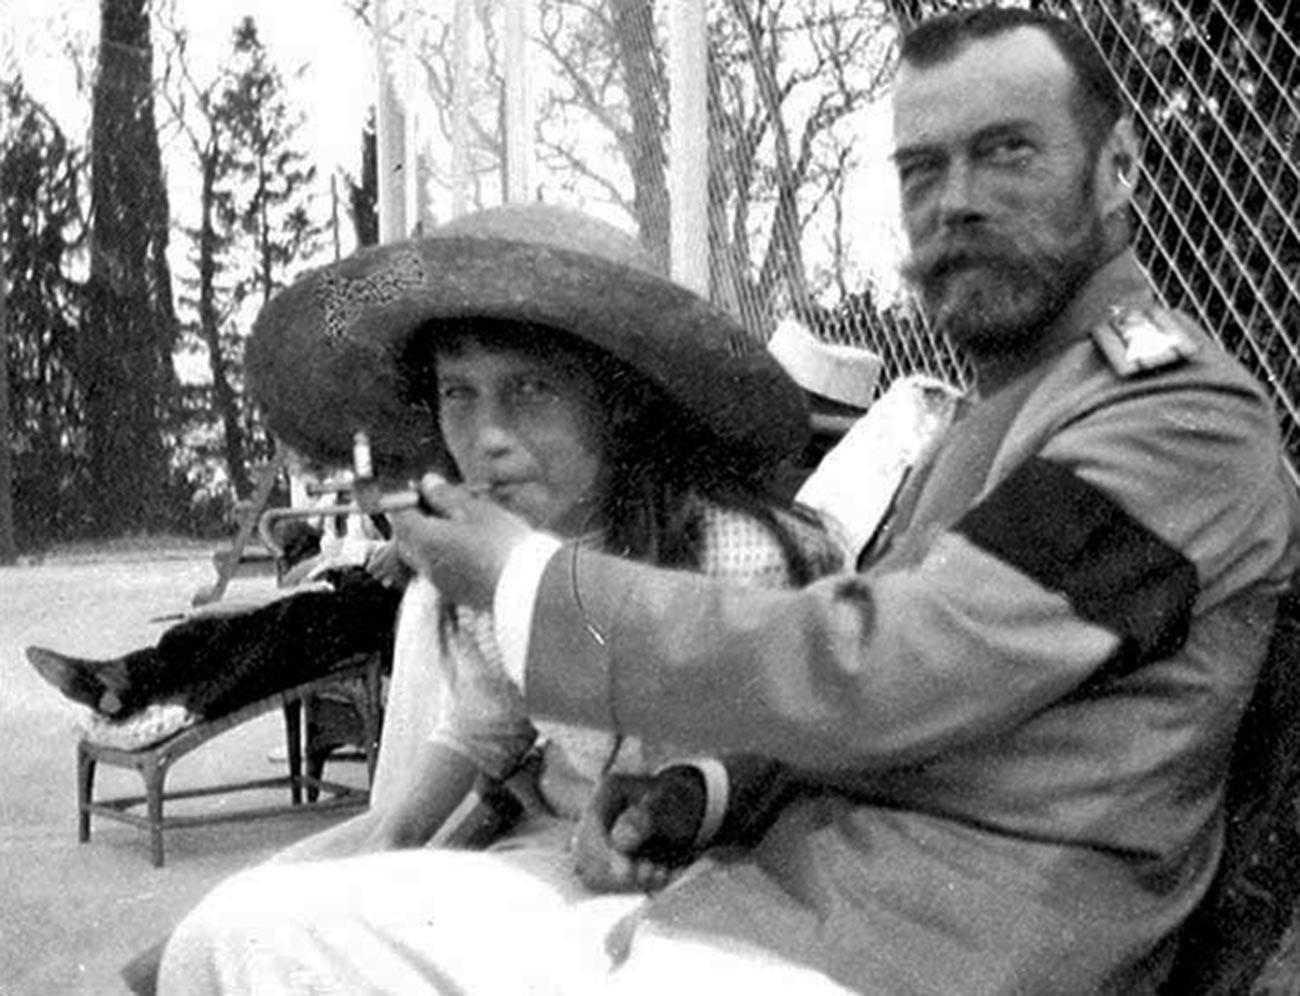 Nicholas II offers Anastasia a drag from his mouthpiece that holds a cigarette.